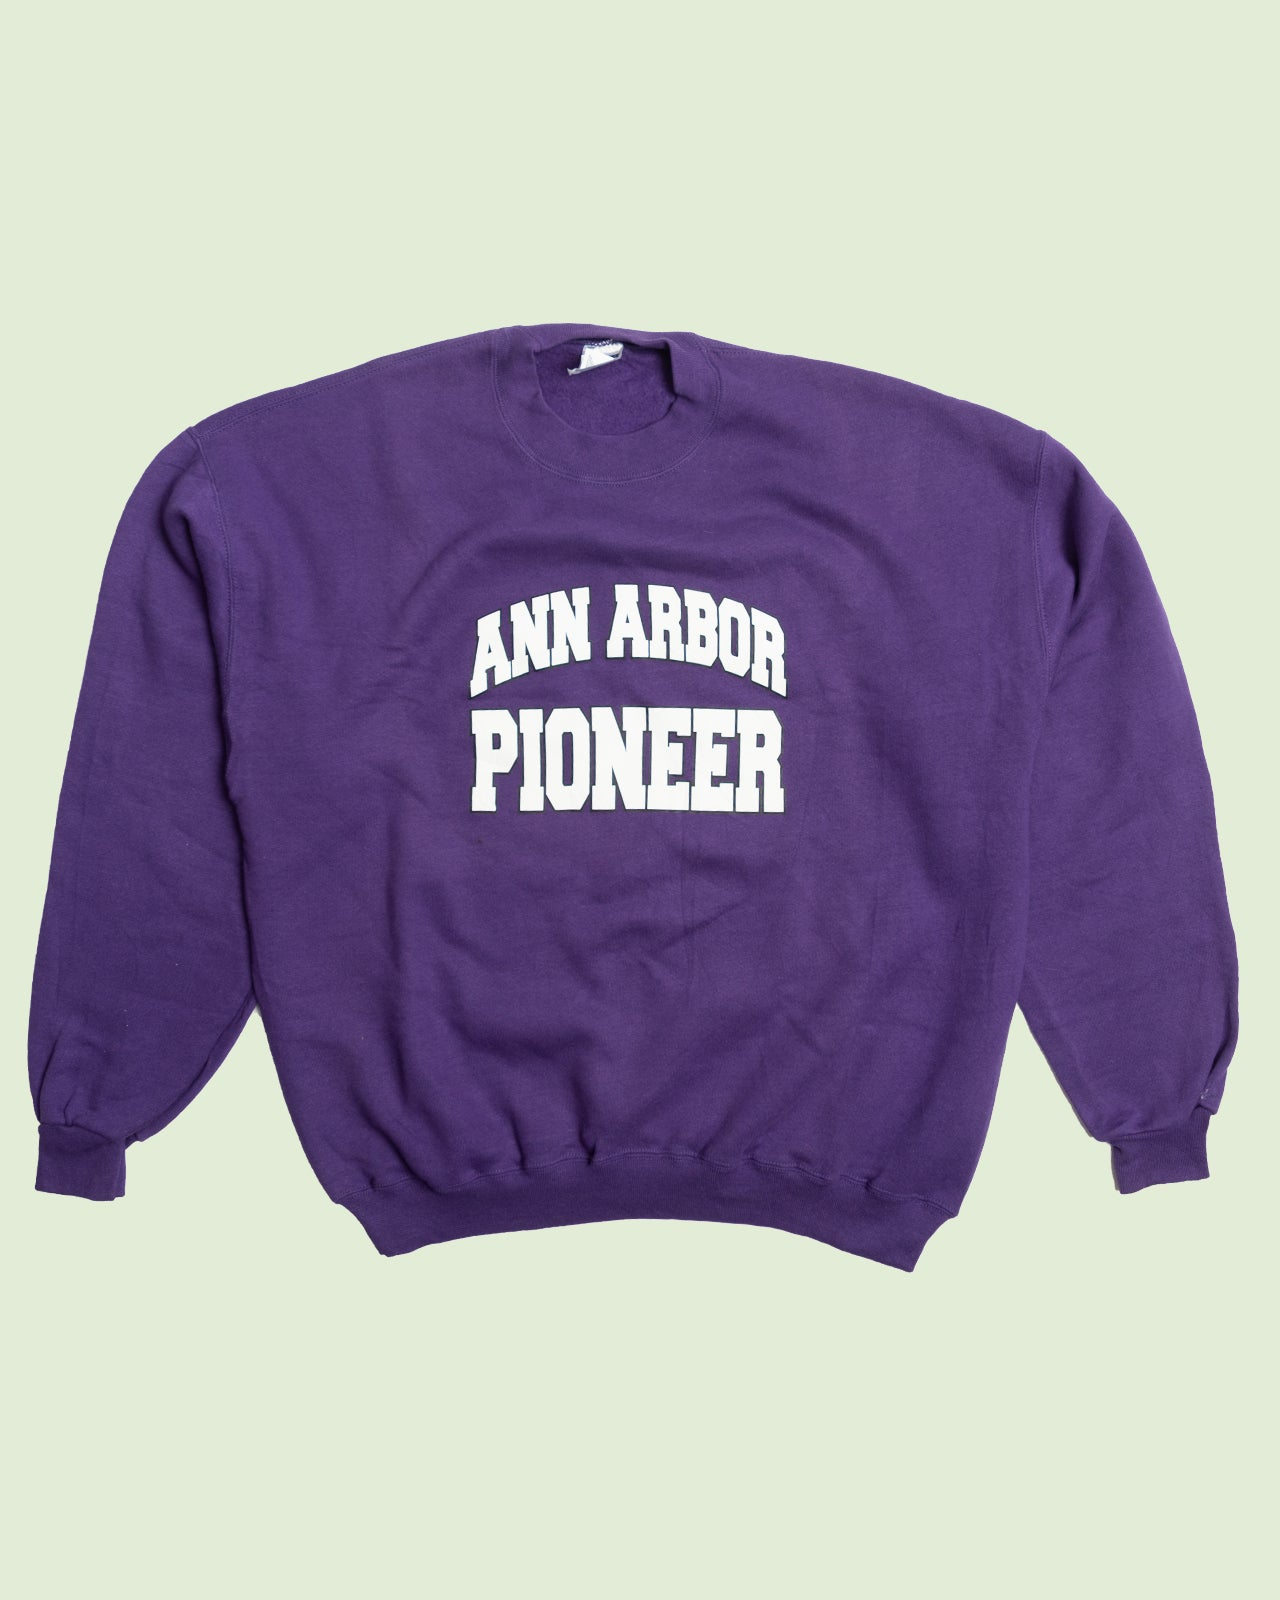 Ann Arbor Sweater (XL)